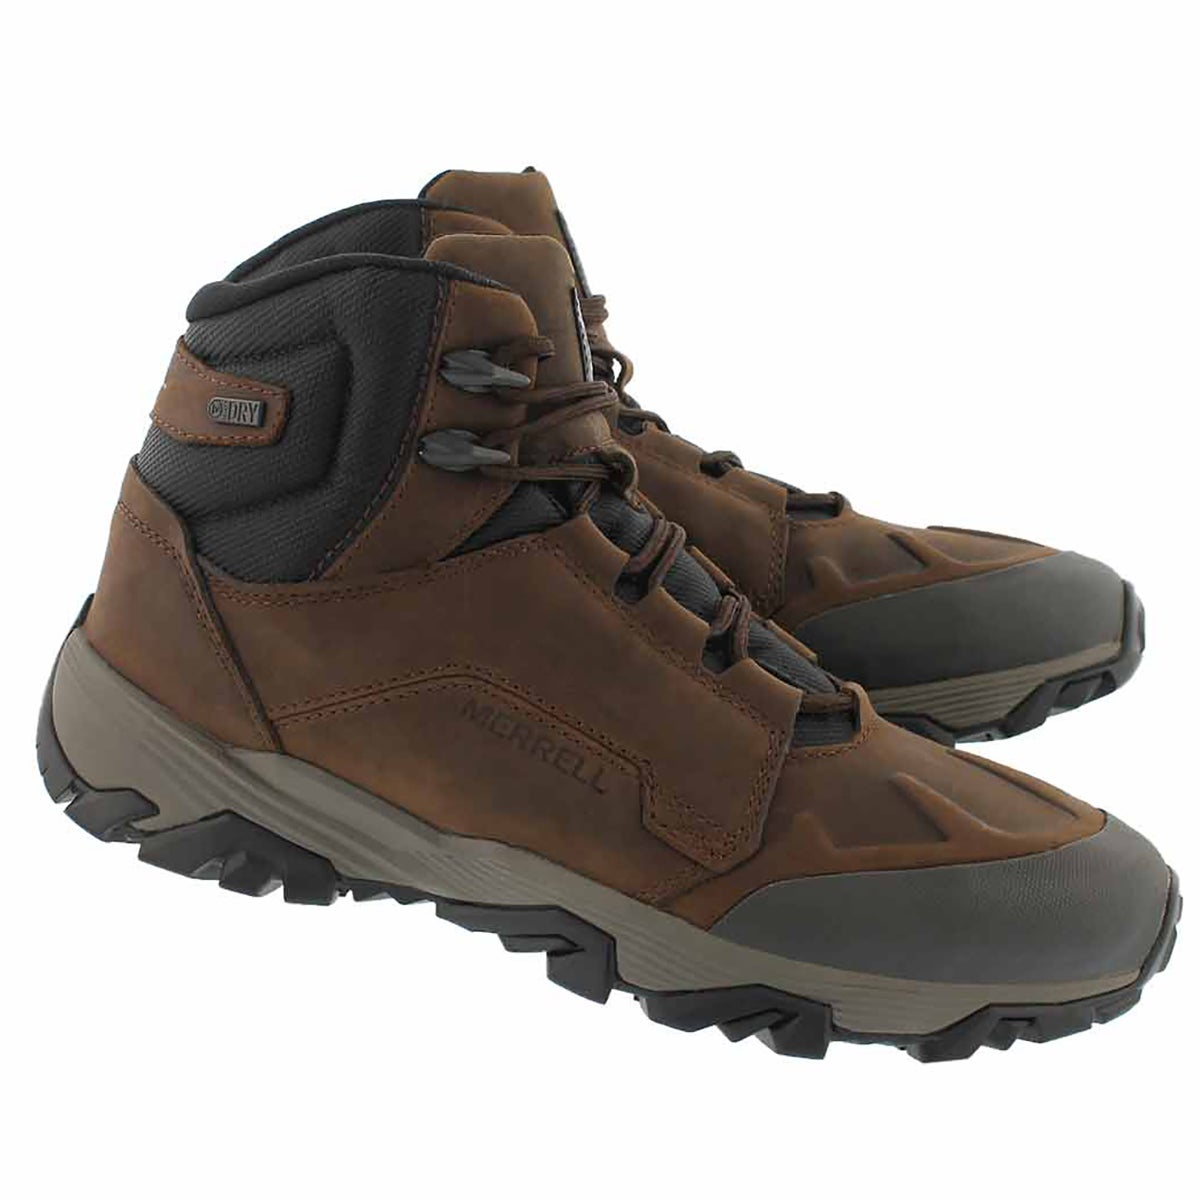 Mns Coldpack Ice clay wtpf winter boot